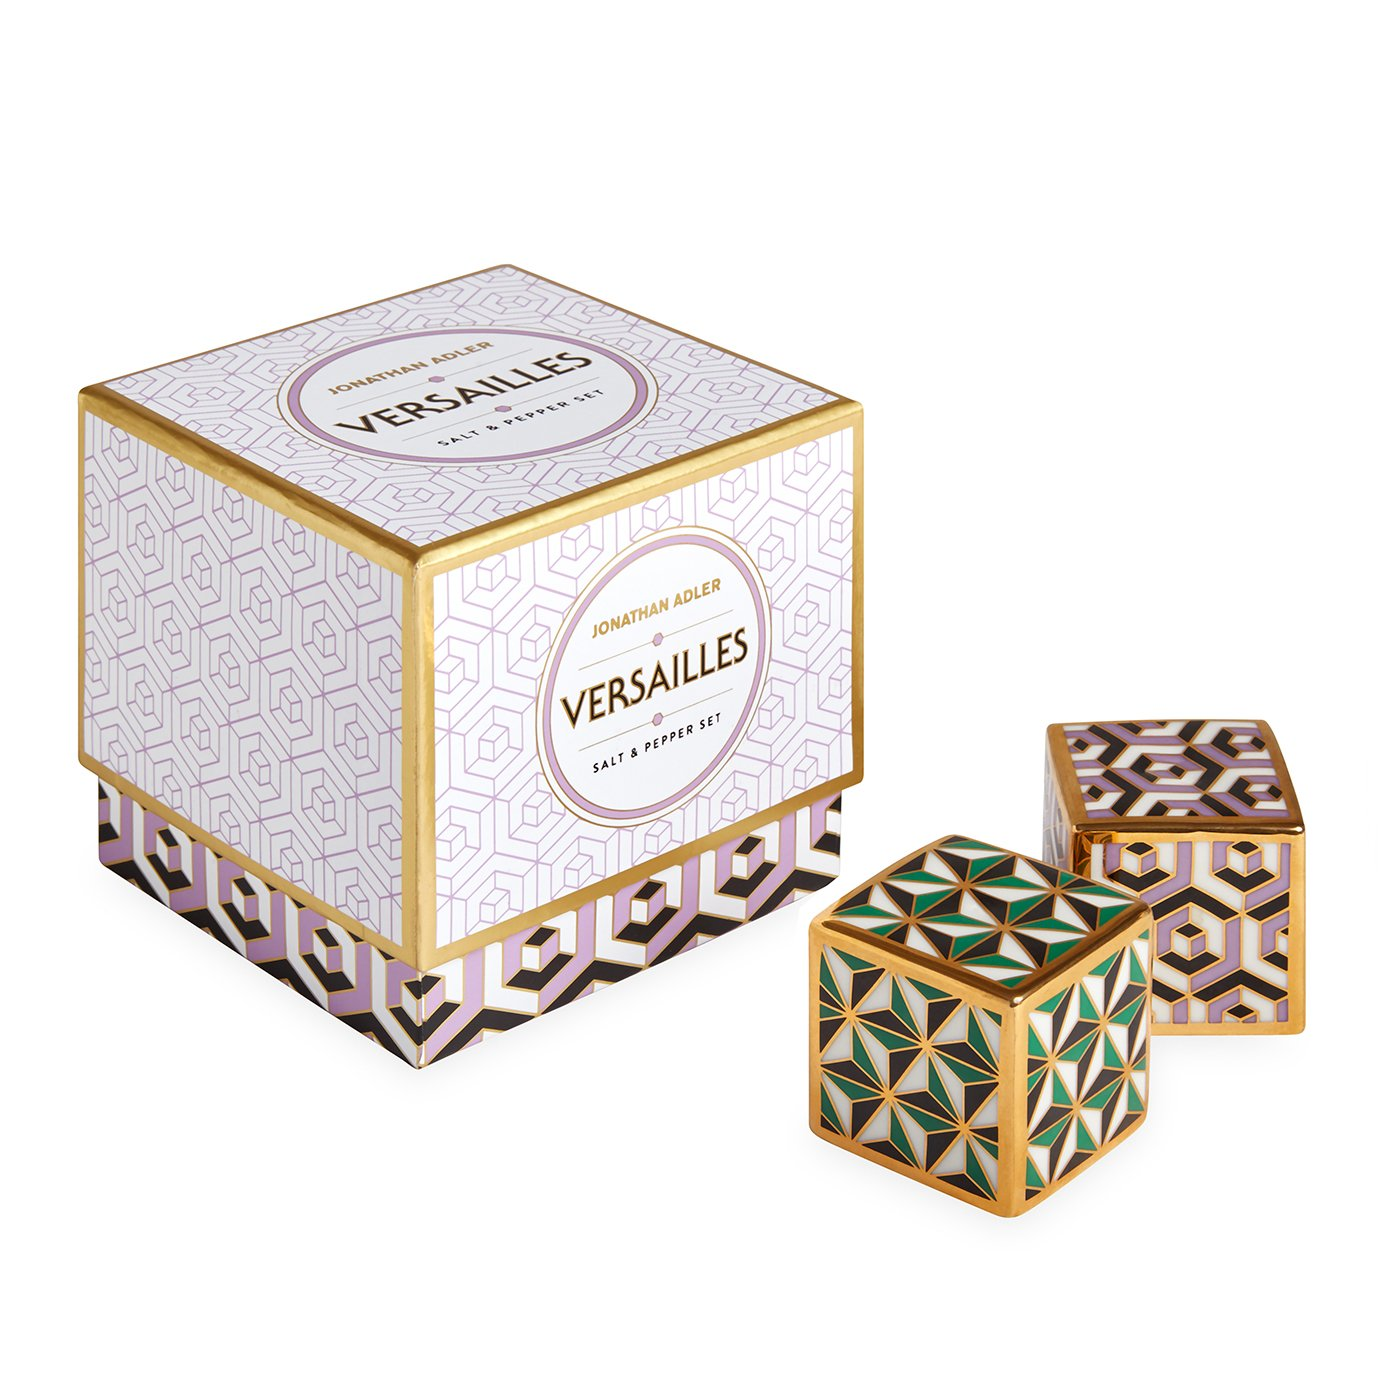 Jonathan Adler 26475 Versailles Salt and Pepper Shaker, One Size, Multi by Jonathan Adler